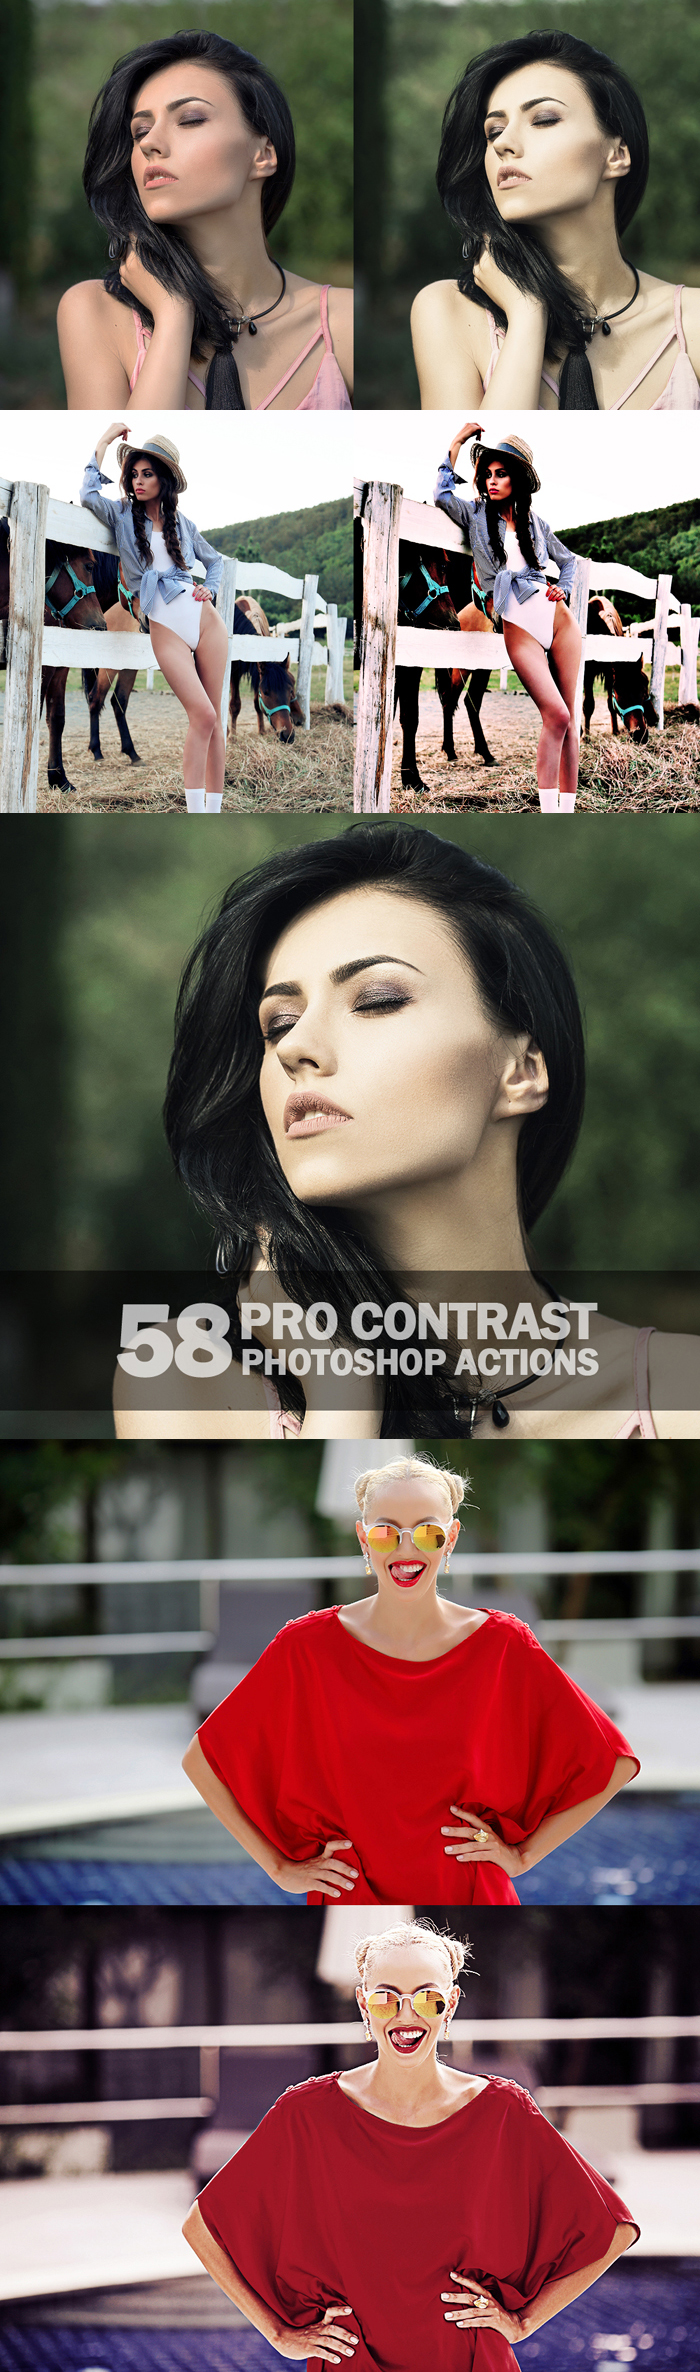 1850 Photoshop Actions example image 16